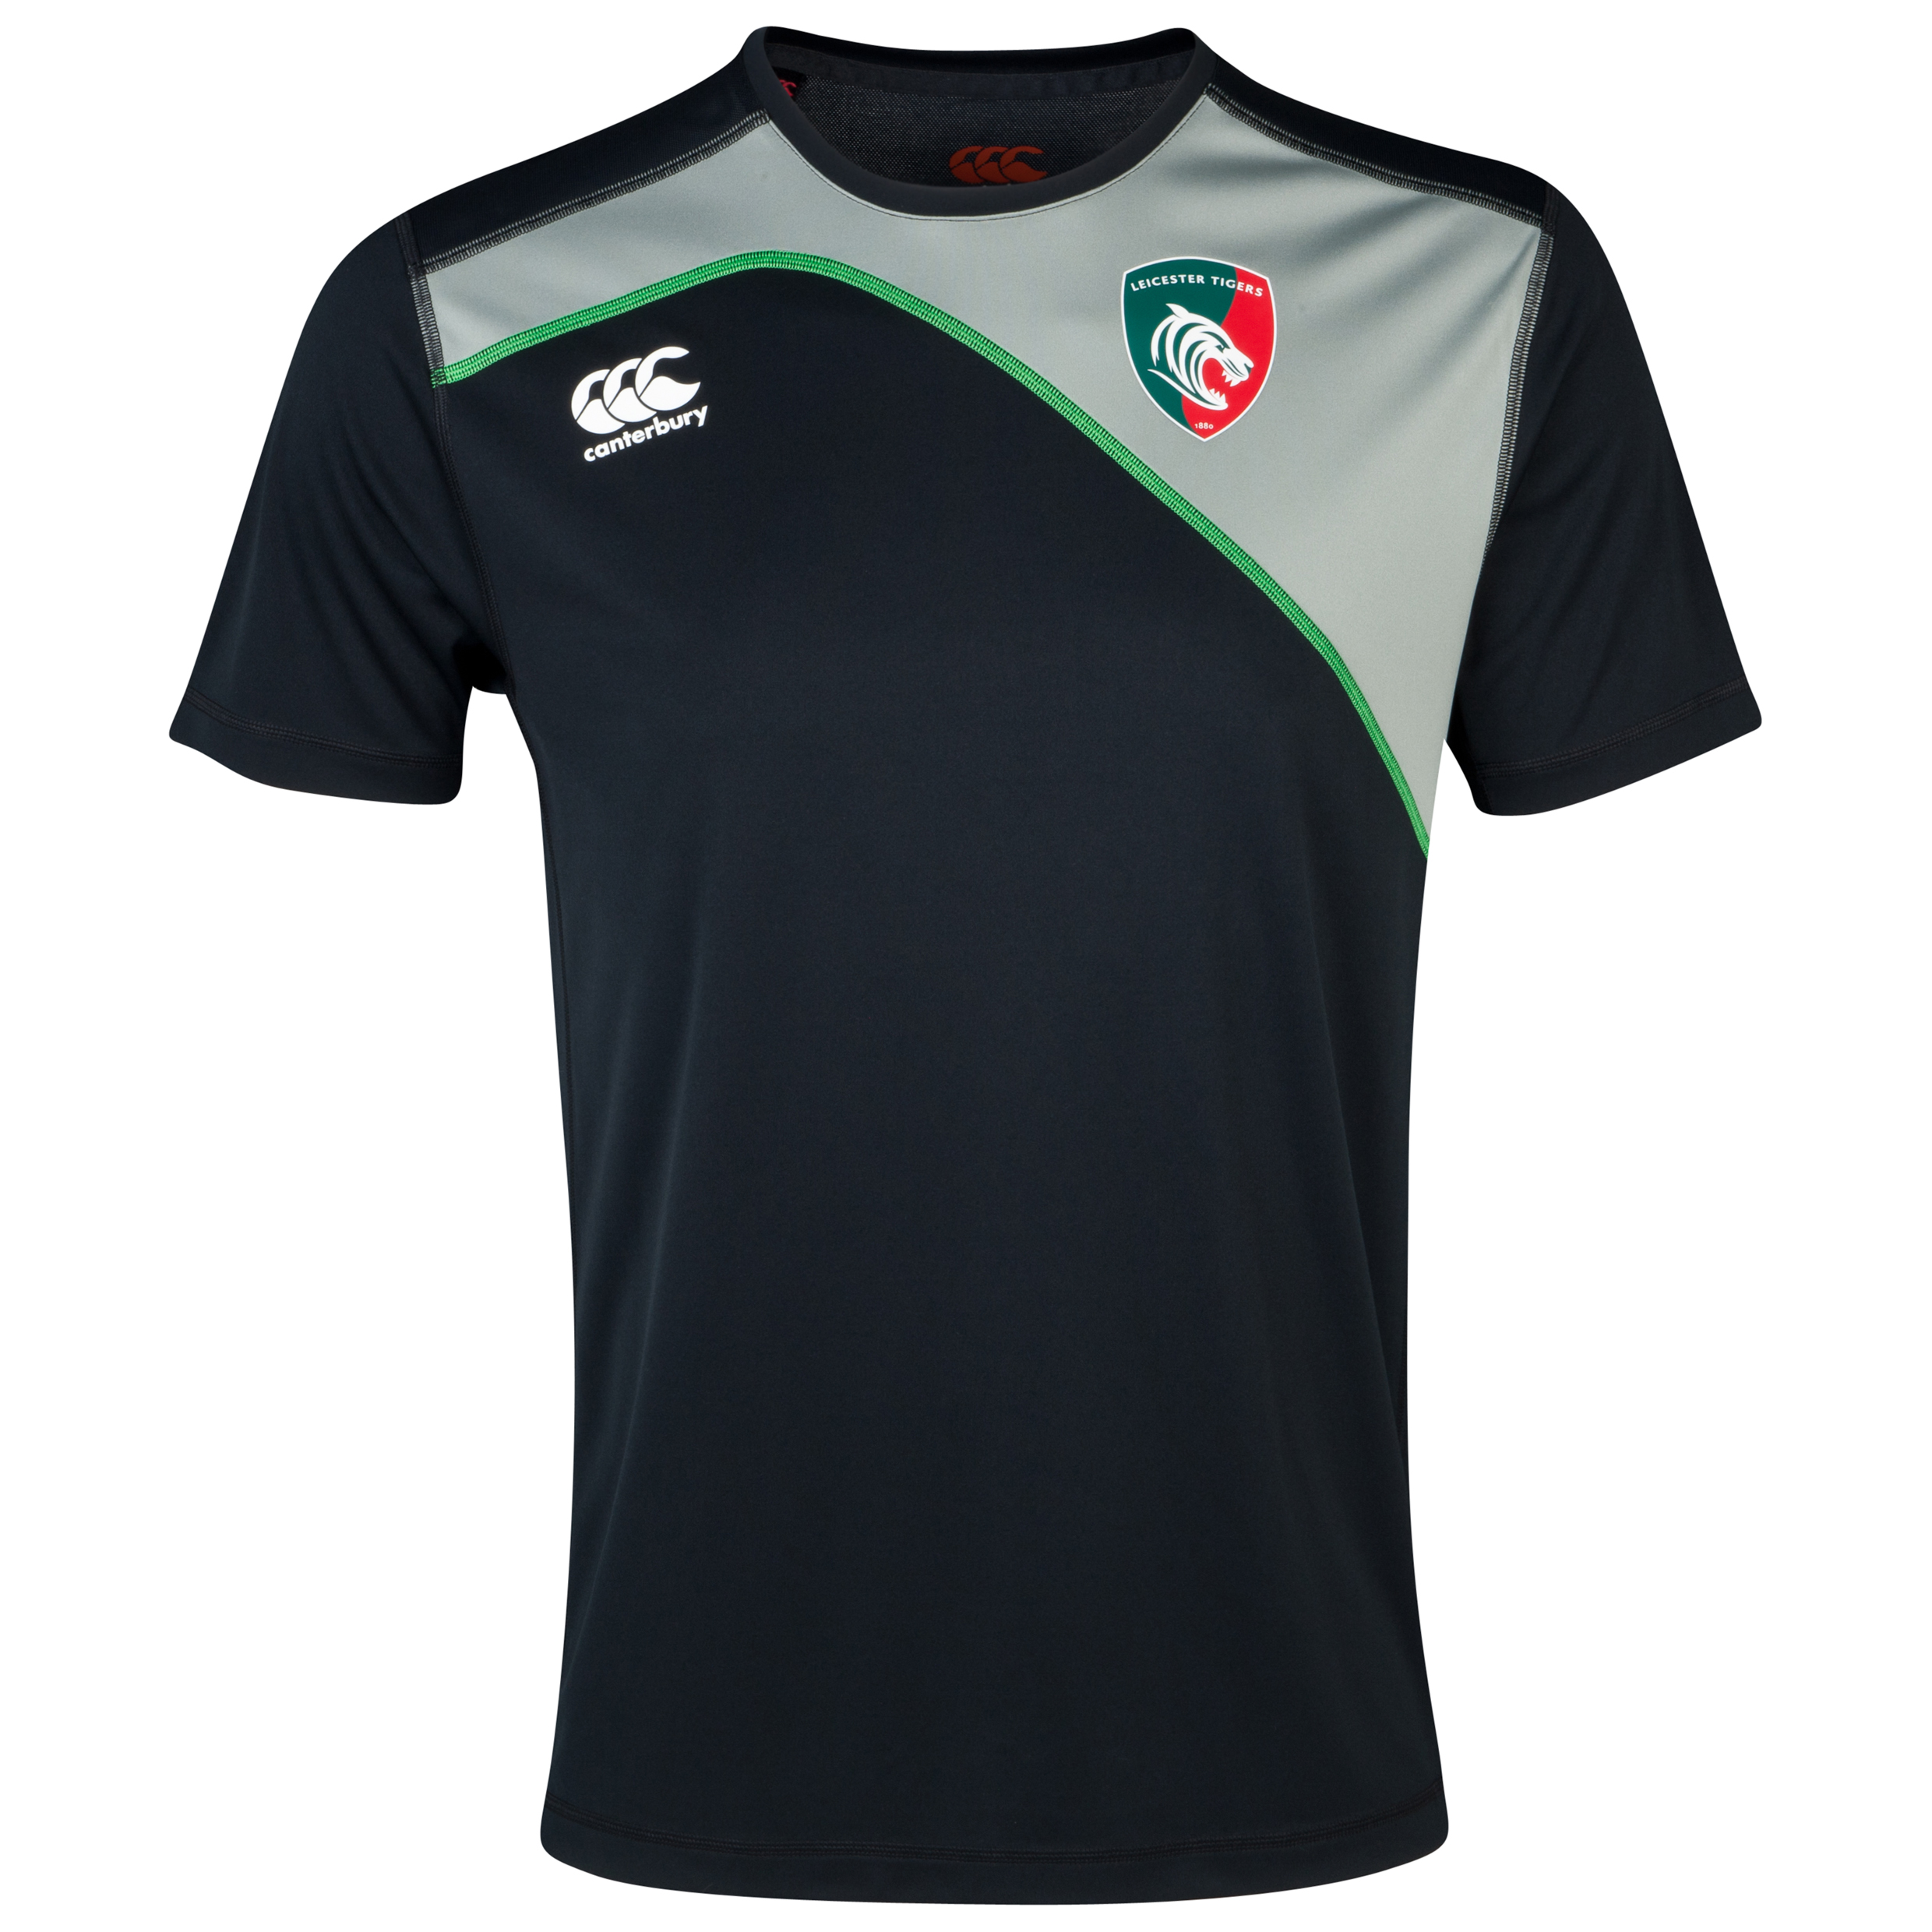 Leicester Tigers Cut and Sew Dry T-Shirt Grey